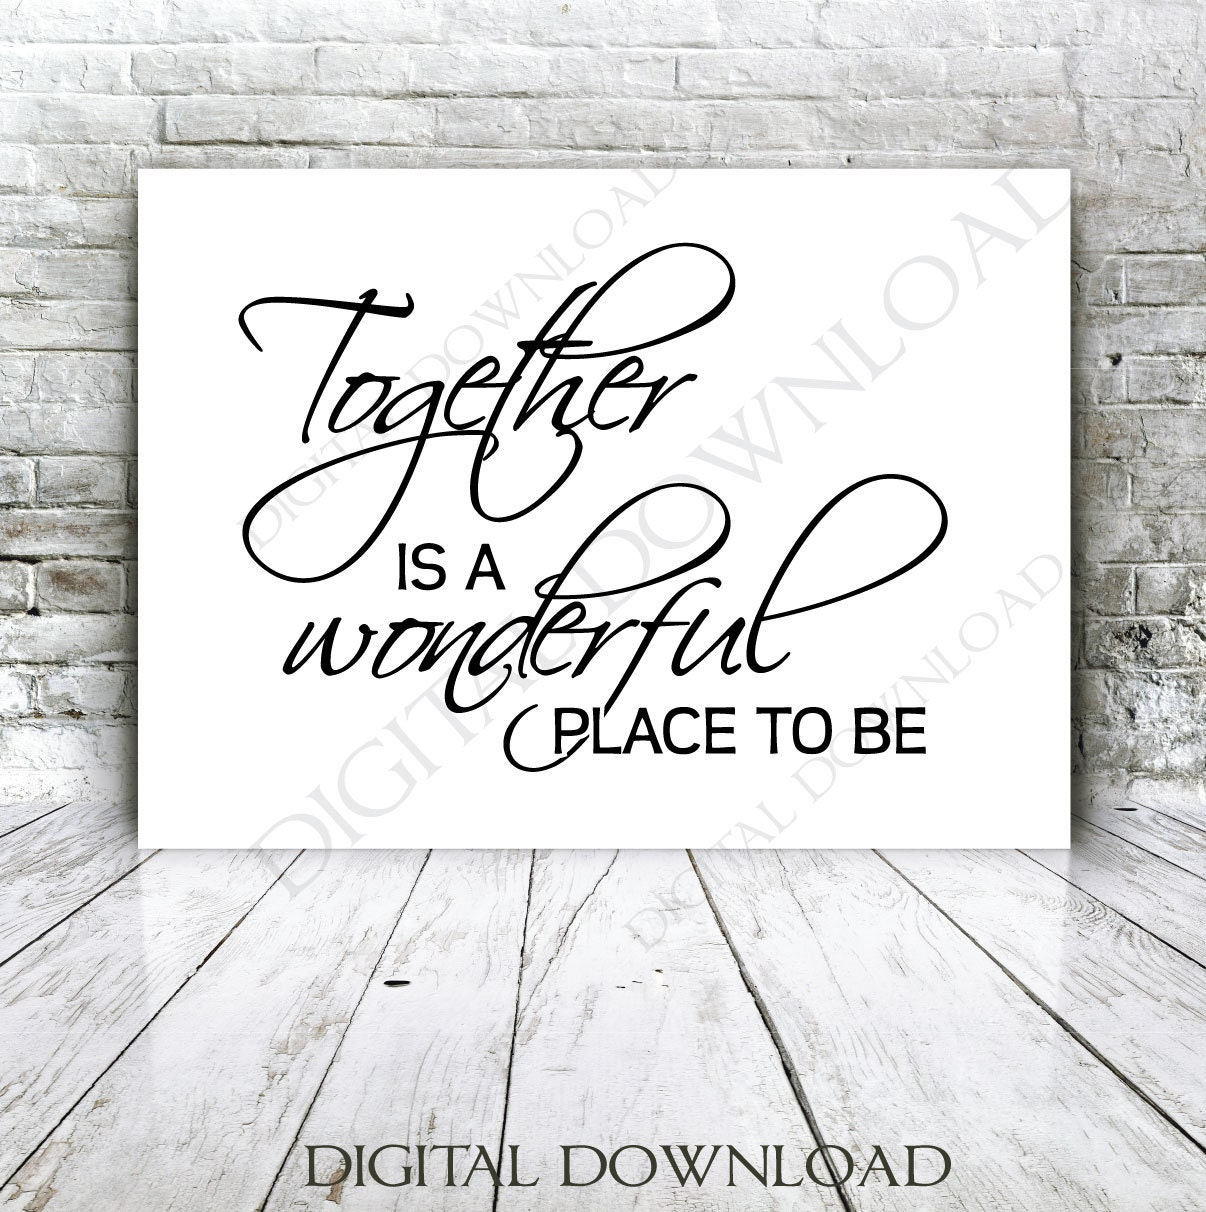 Together Is A Wonderful Place To Be Design Vector Digital